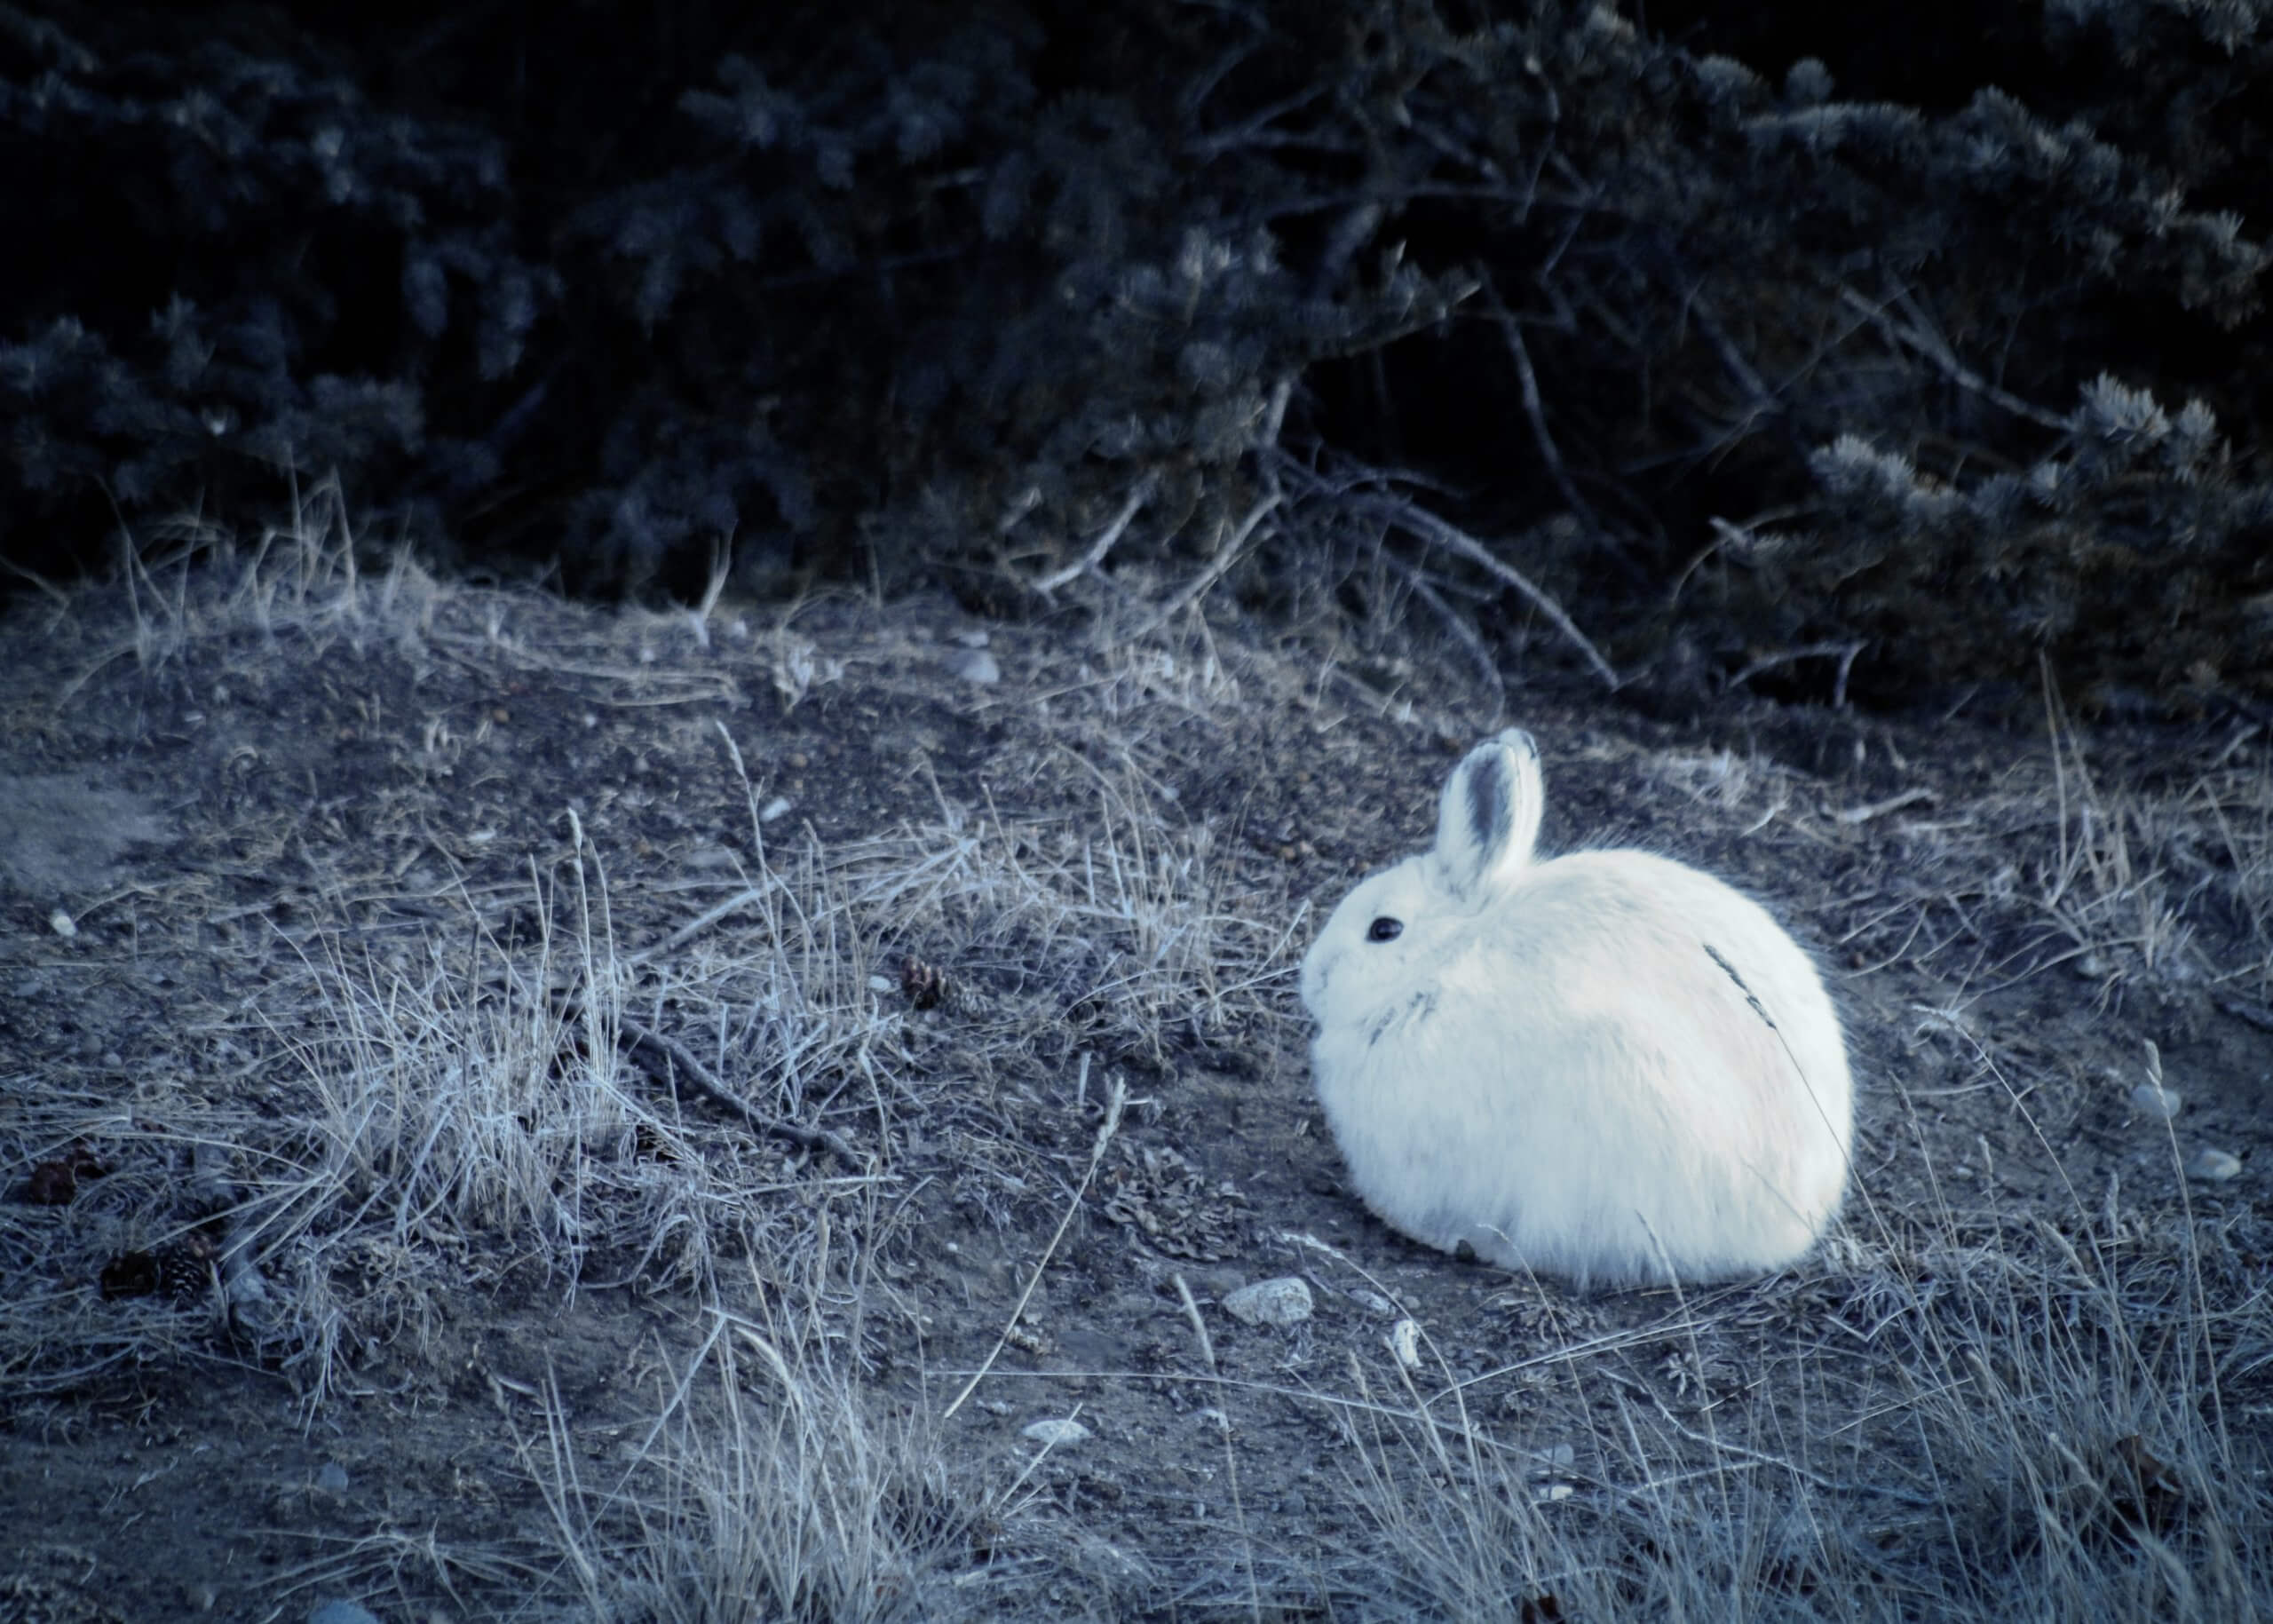 White snowshoe hare rabbit sits on a hill beneath a spruce tree